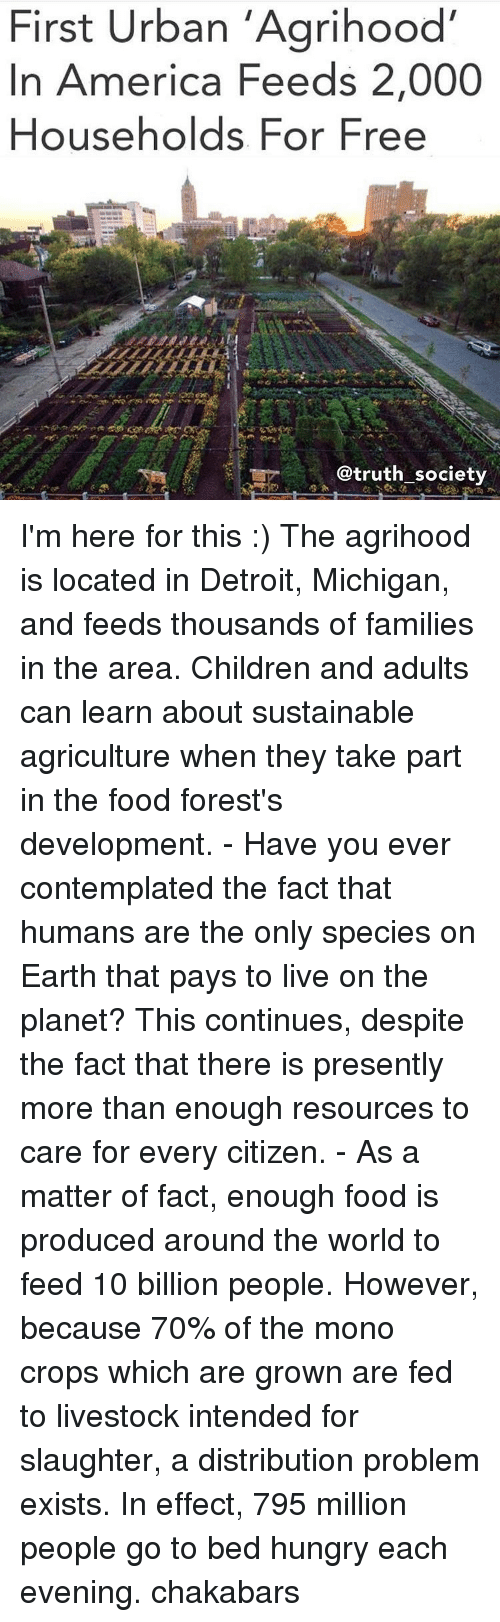 contemplation: First Urban 'Agrihood'  In America Feeds 2,000  Households For Free  @truth society I'm here for this :) The agrihood is located in Detroit, Michigan, and feeds thousands of families in the area. Children and adults can learn about sustainable agriculture when they take part in the food forest's development. - Have you ever contemplated the fact that humans are the only species on Earth that pays to live on the planet? This continues, despite the fact that there is presently more than enough resources to care for every citizen. - As a matter of fact, enough food is produced around the world to feed 10 billion people. However, because 70% of the mono crops which are grown are fed to livestock intended for slaughter, a distribution problem exists. In effect, 795 million people go to bed hungry each evening. chakabars